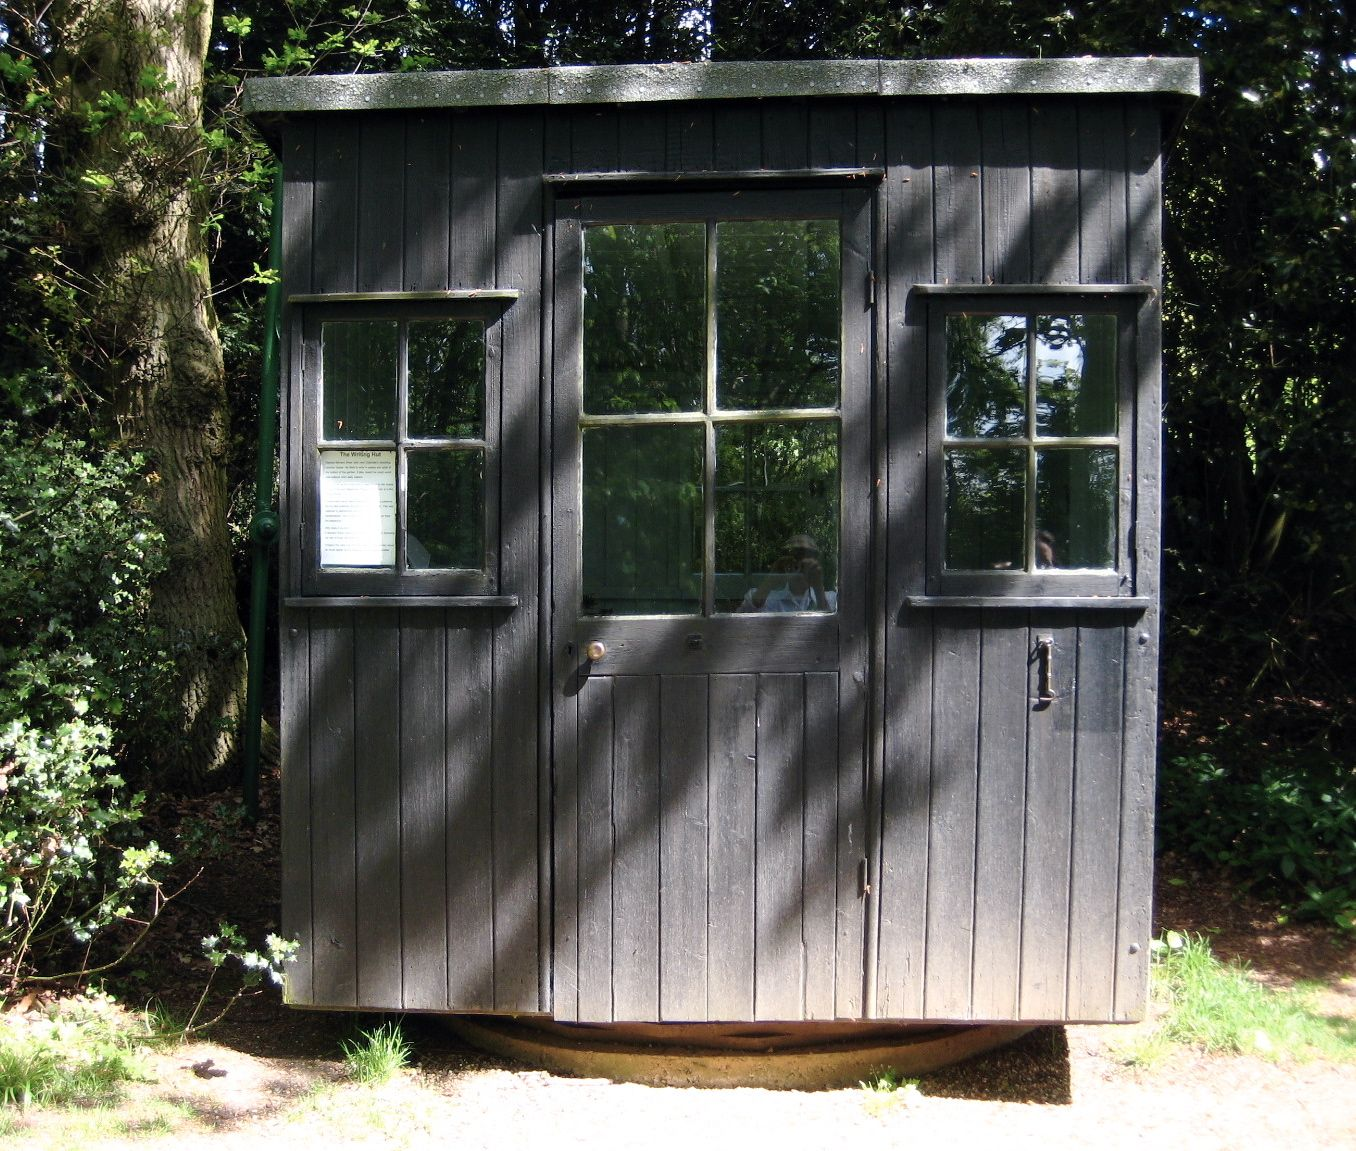 George Bernard Shaw's rotating writing hut